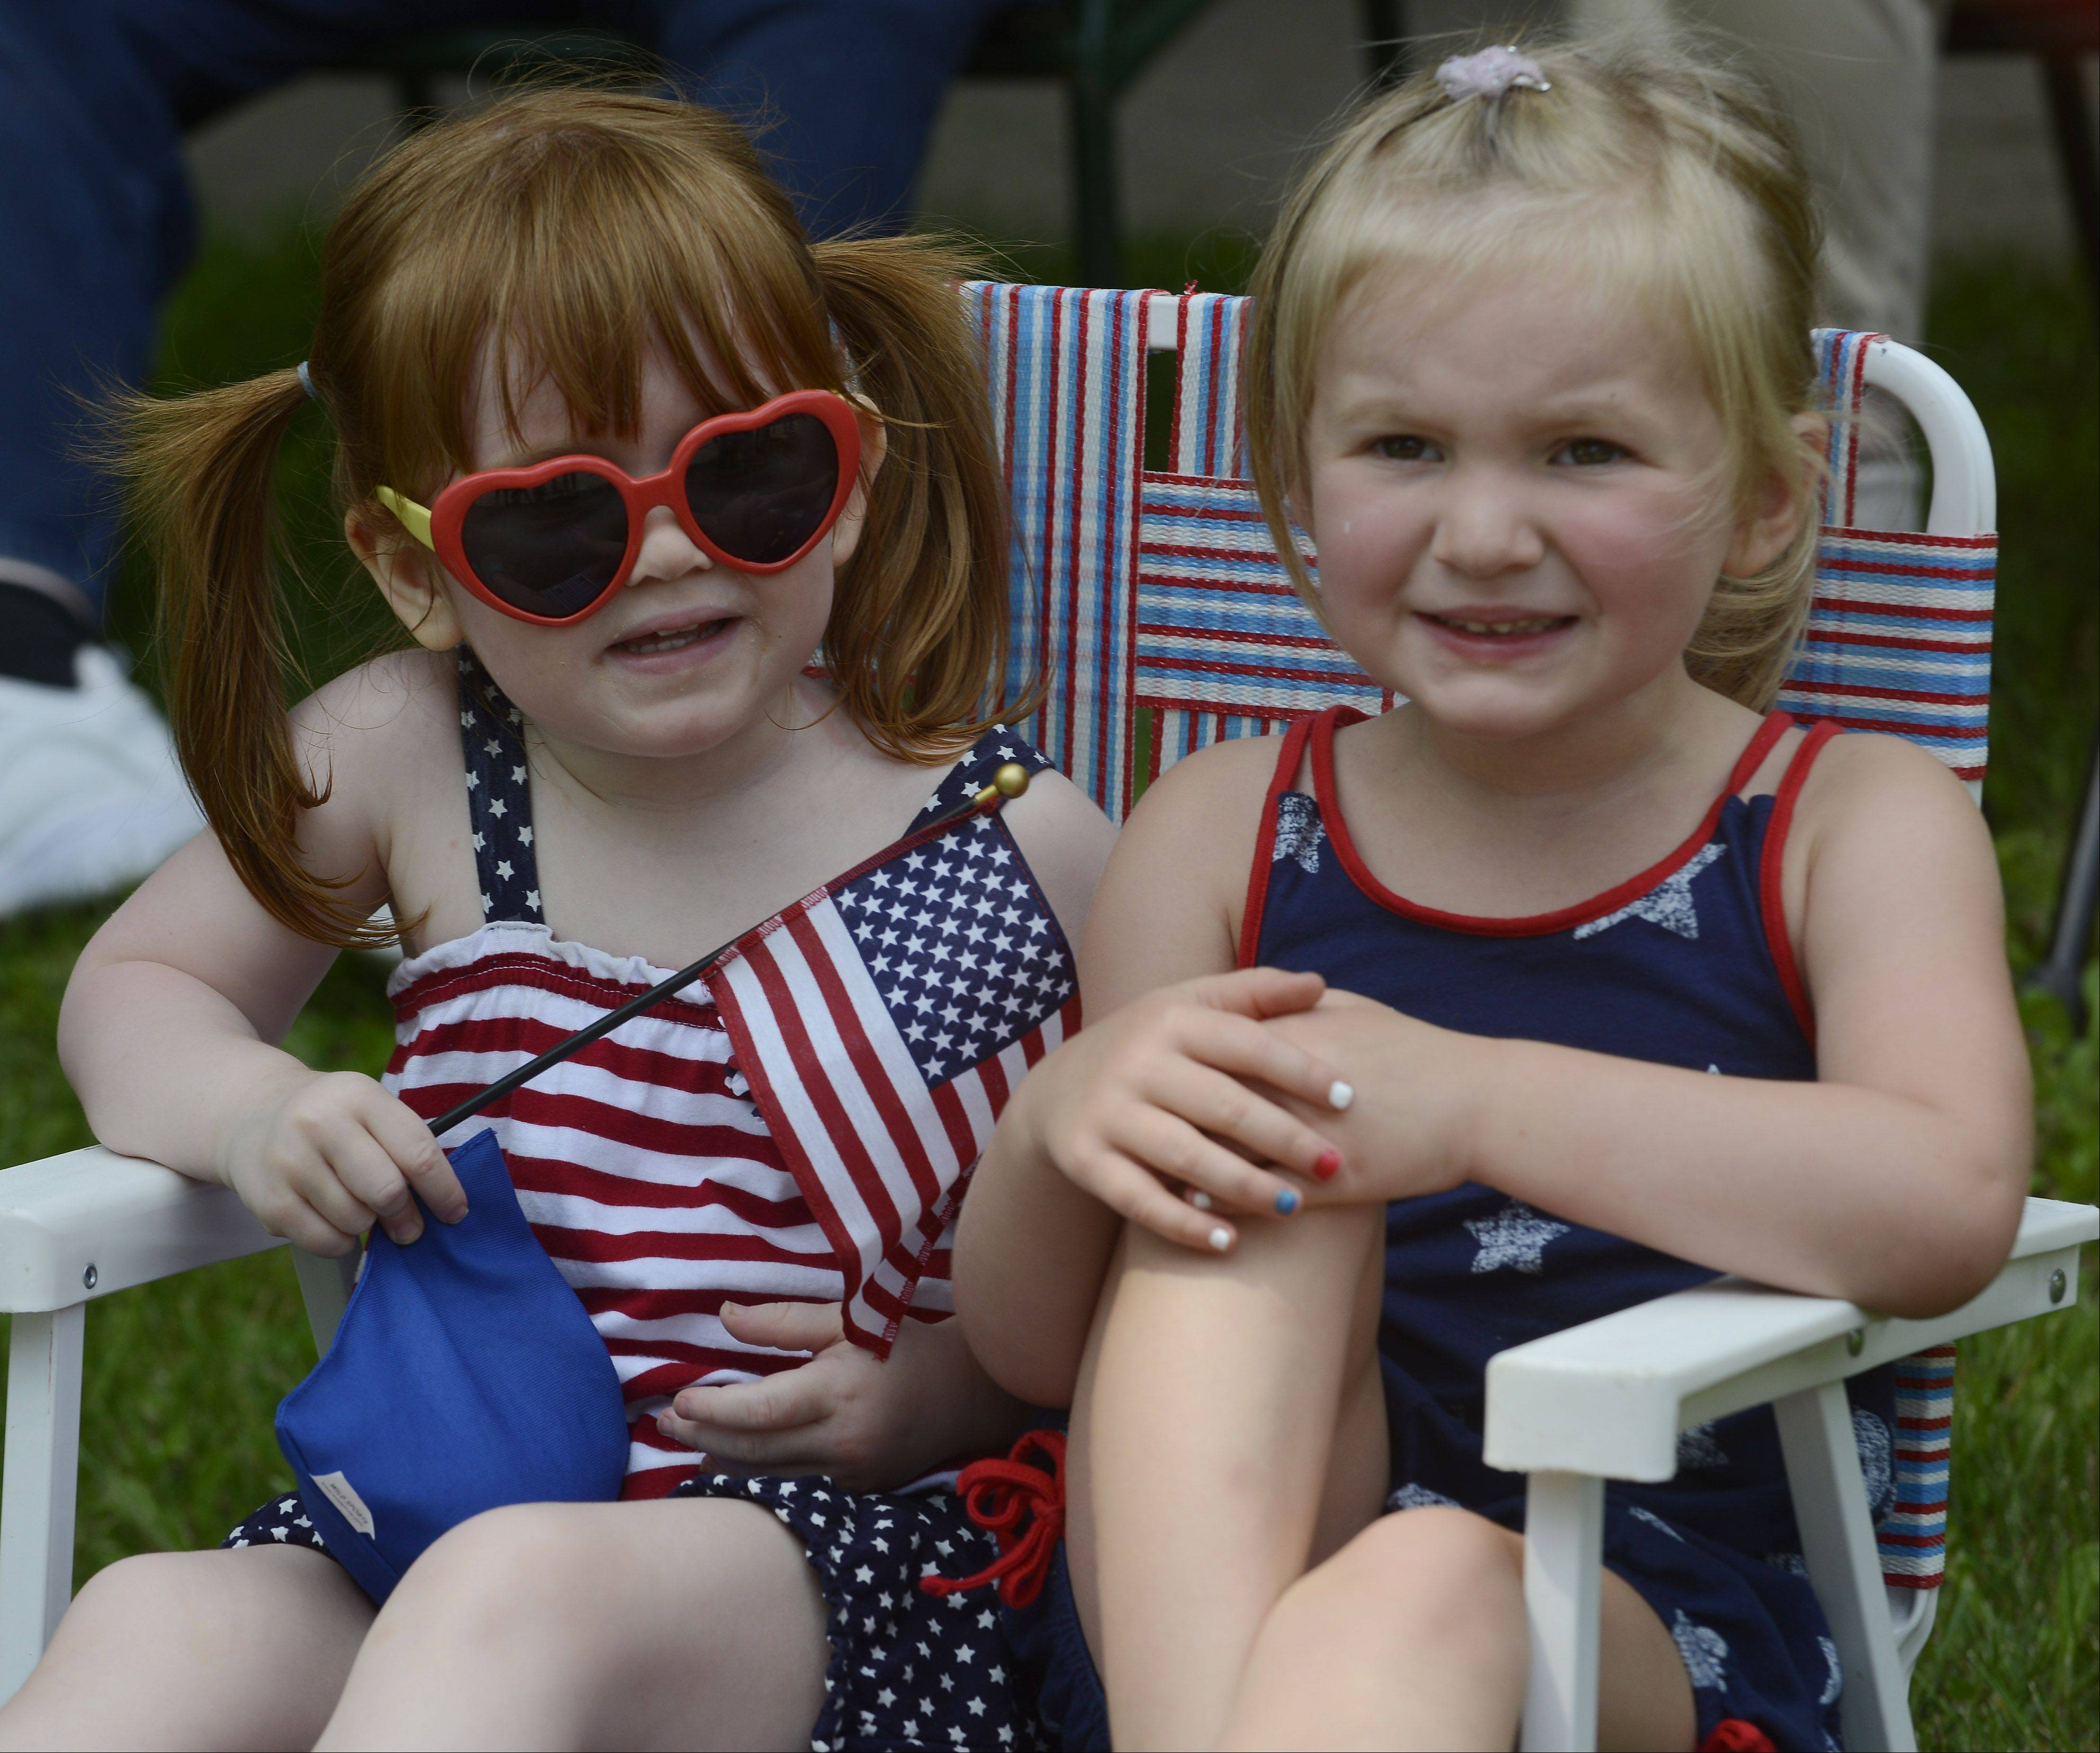 Cousins Grace Carroll, 2, left, and Megan Murray, 3, both of Rolling Meadows, sit together during the Rolling Meadows Fourth of July parade Thursday.